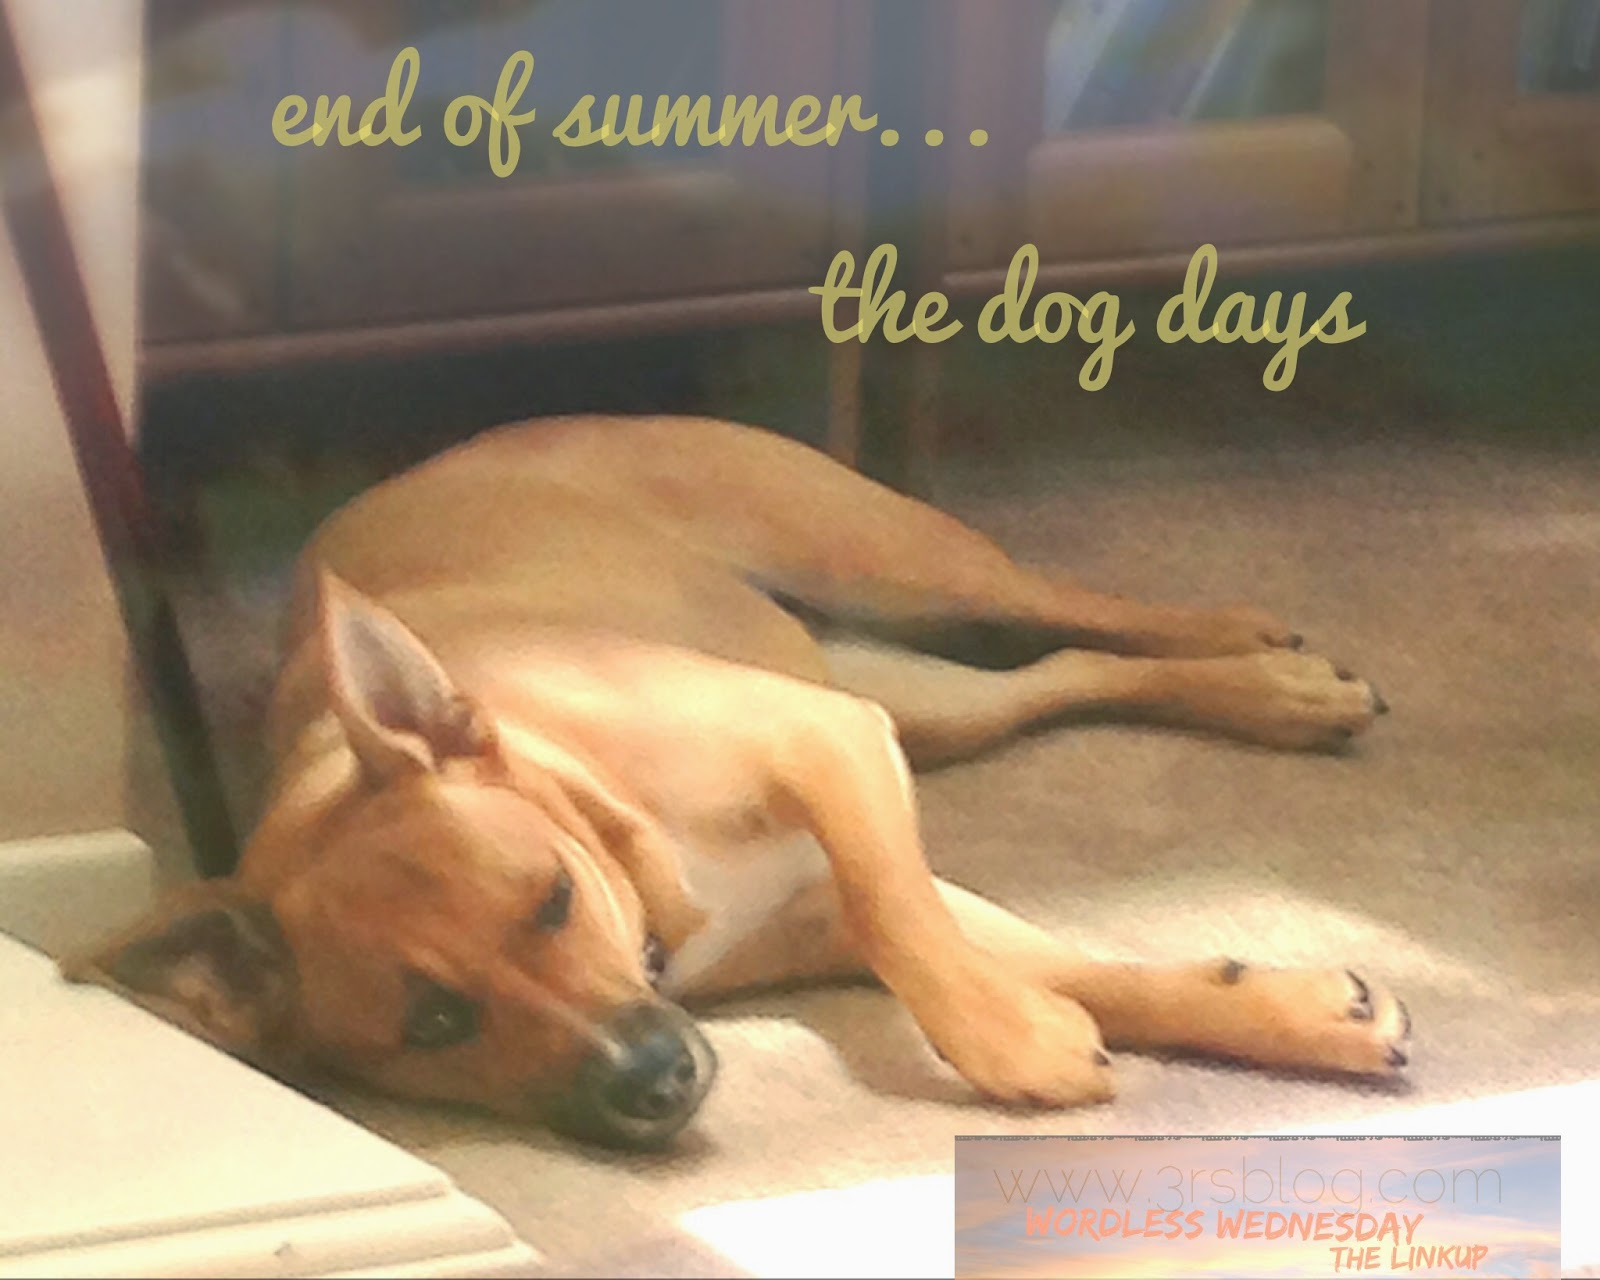 Dog dozing in the sun on a Wordless Wednesday at The 3Rs Blog